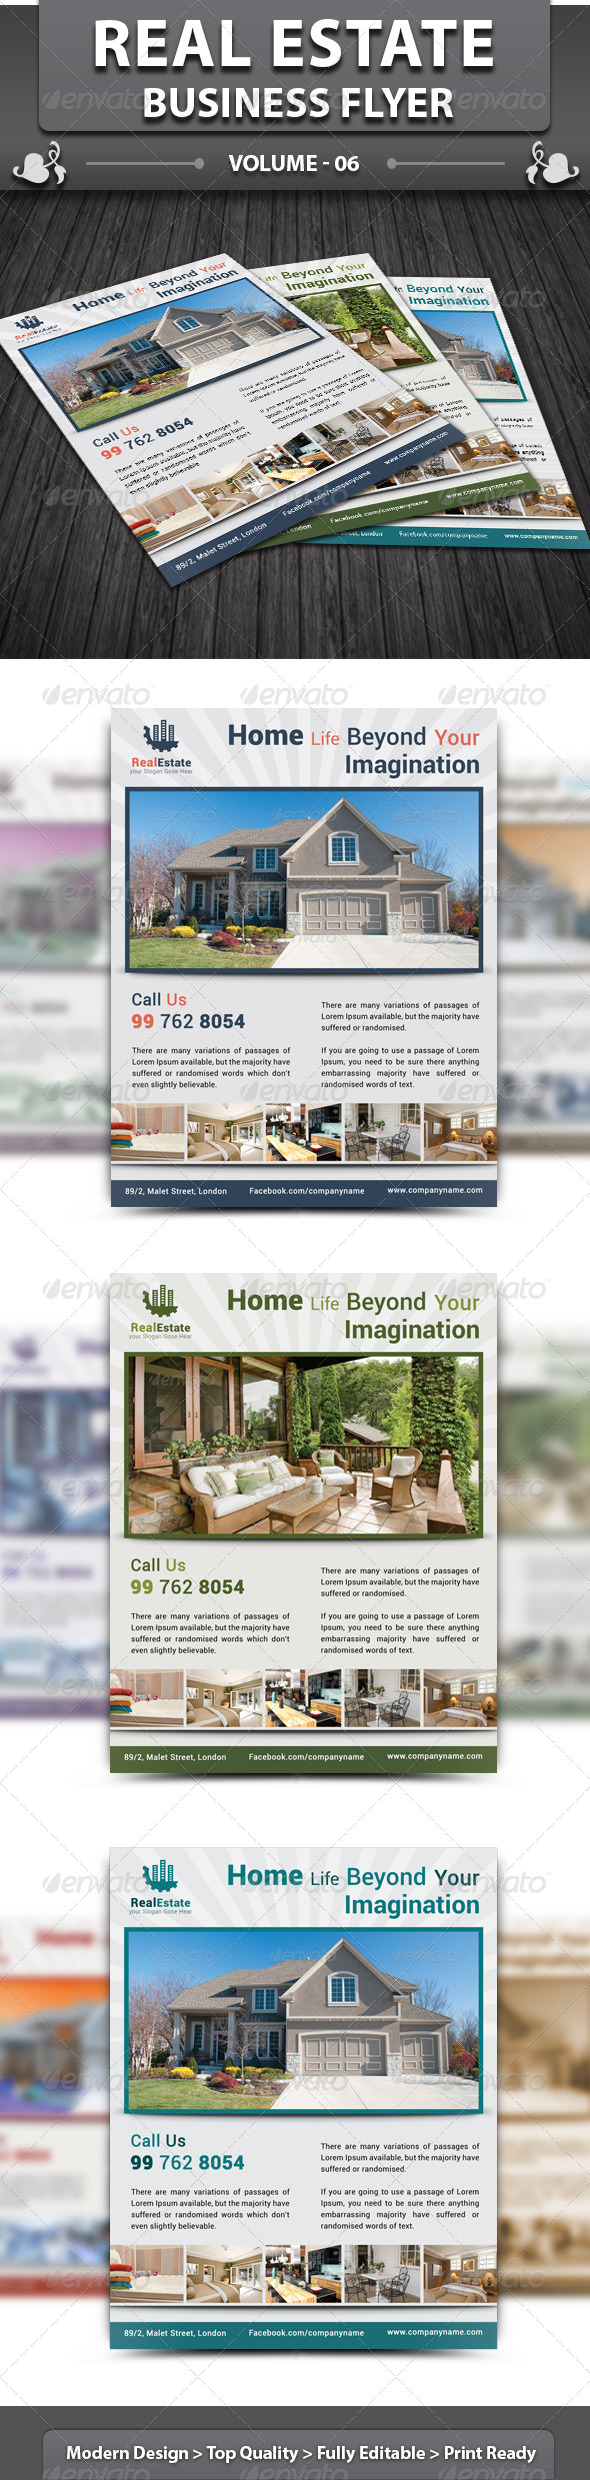 Real Estate Business Flyer | Volume 6